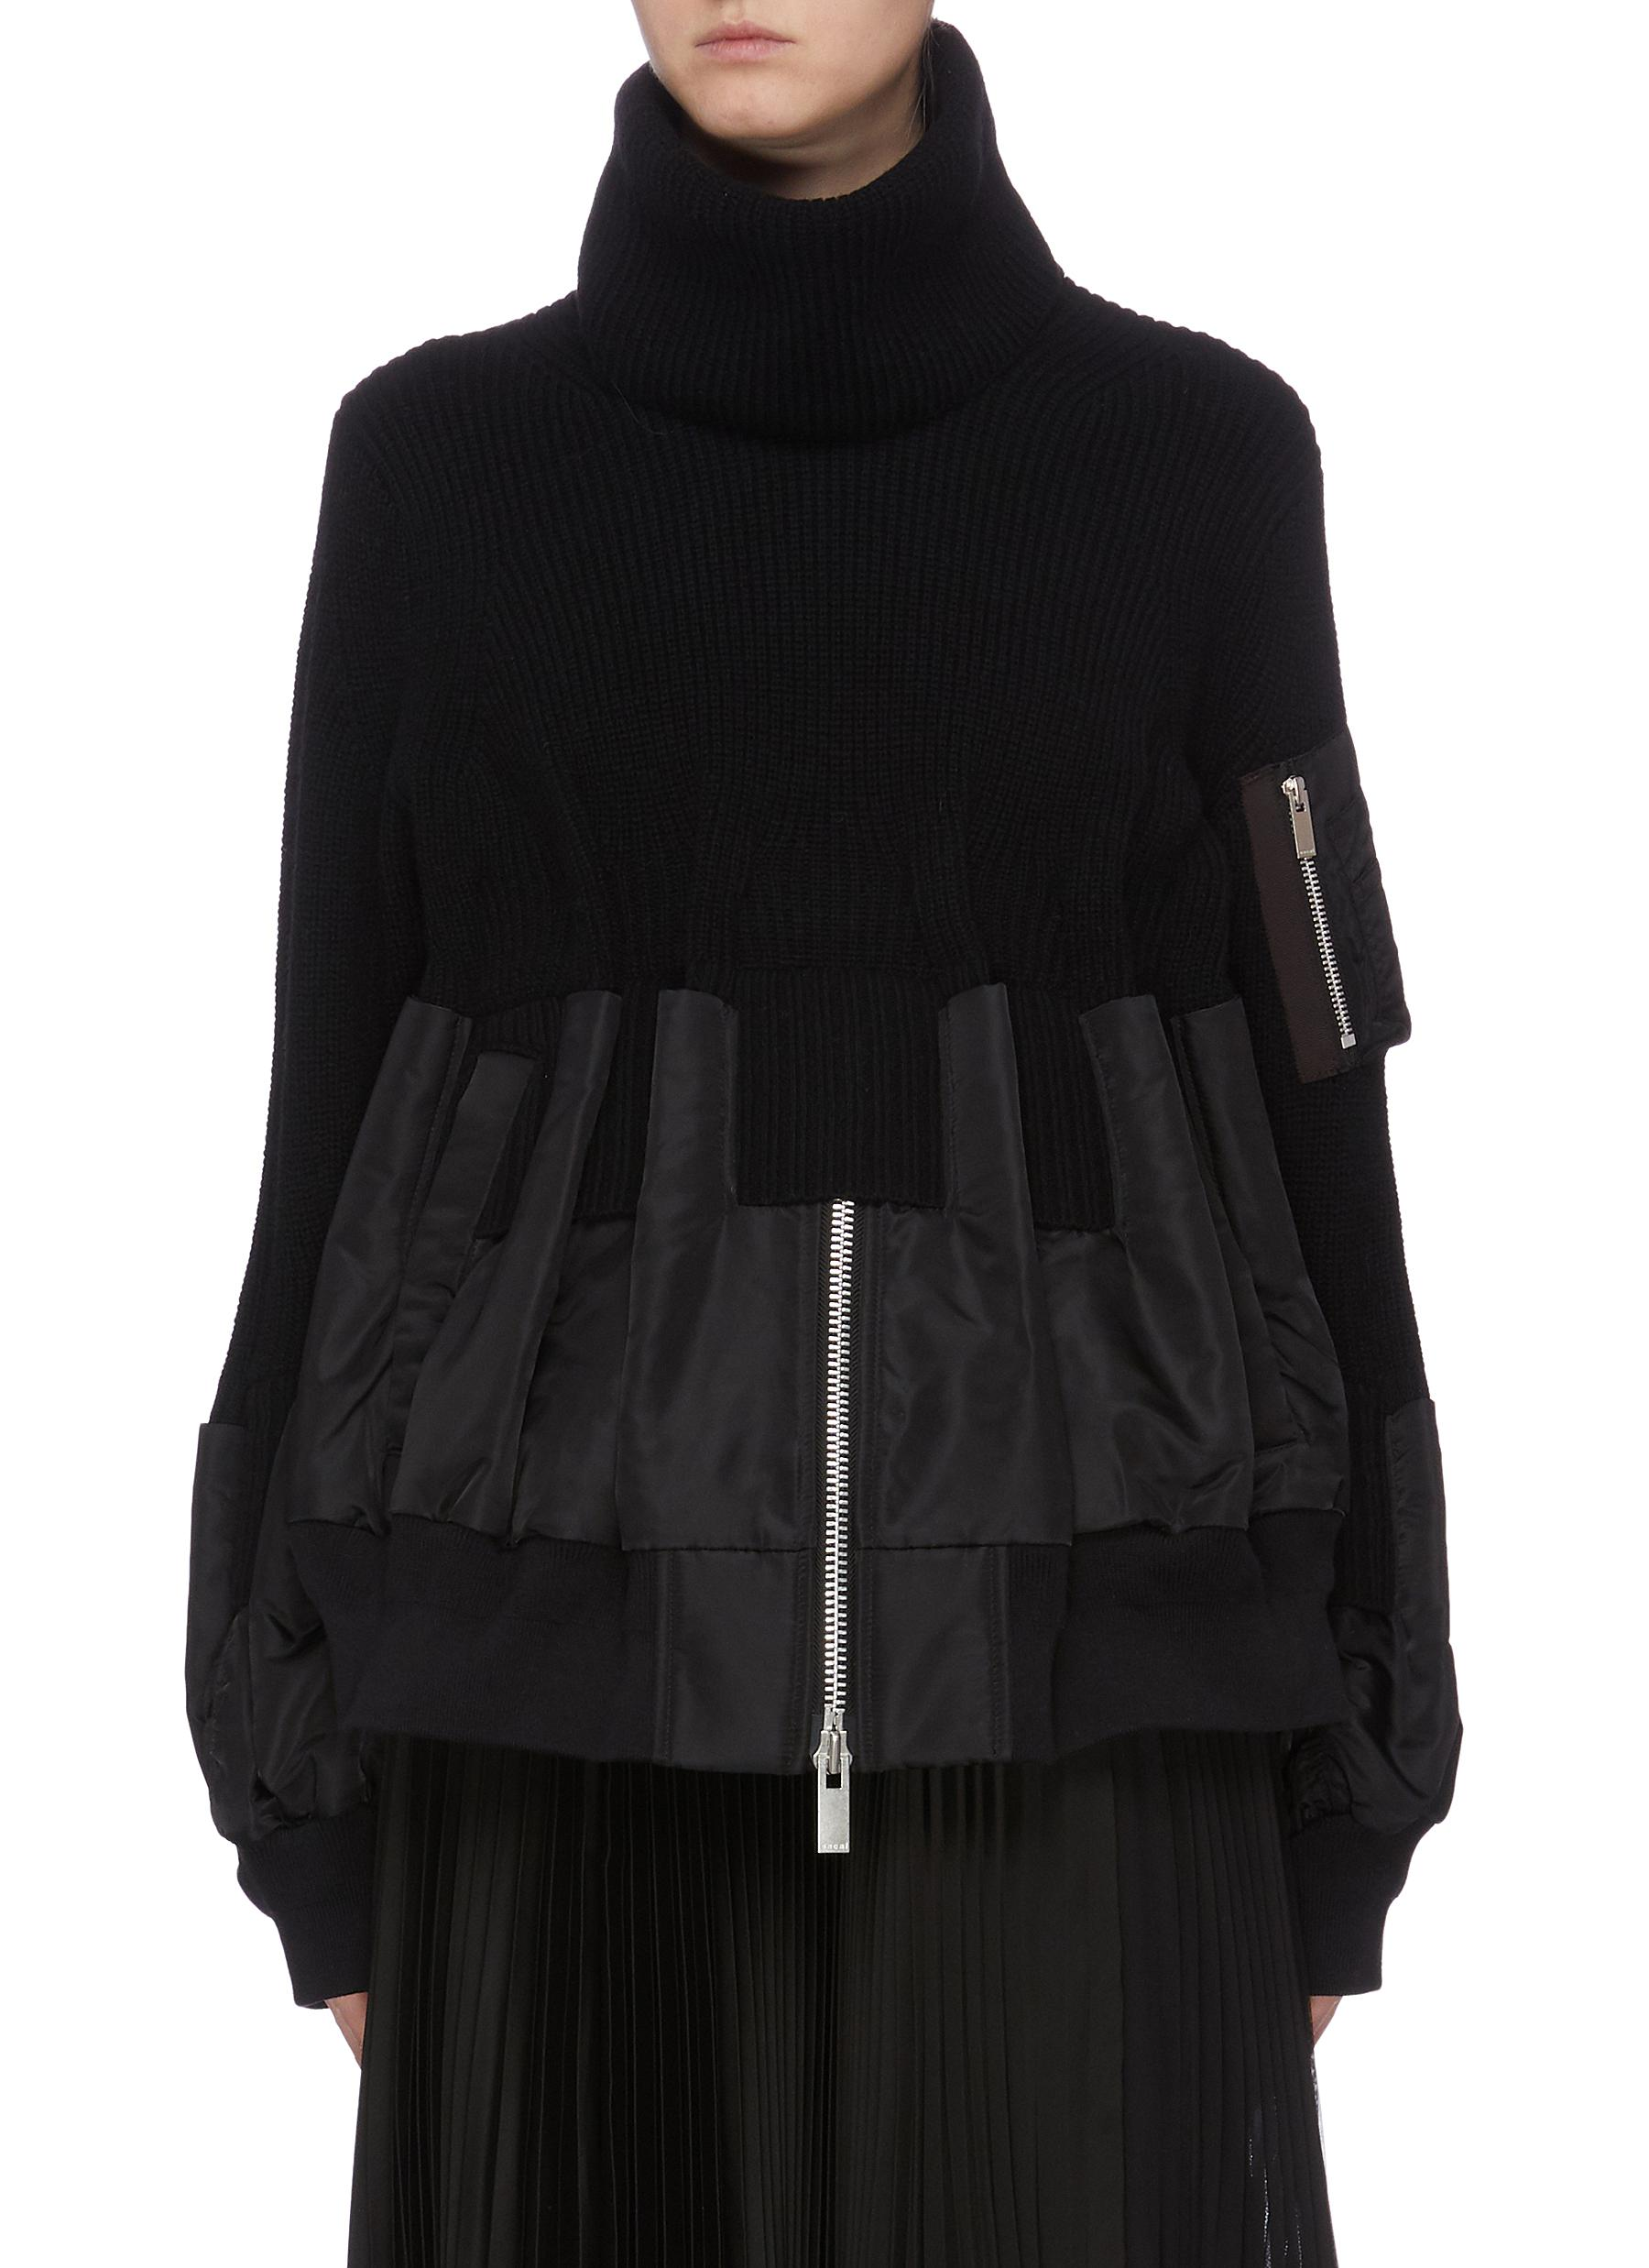 Detachable turtleneck bomber jacket panel sweater by Sacai